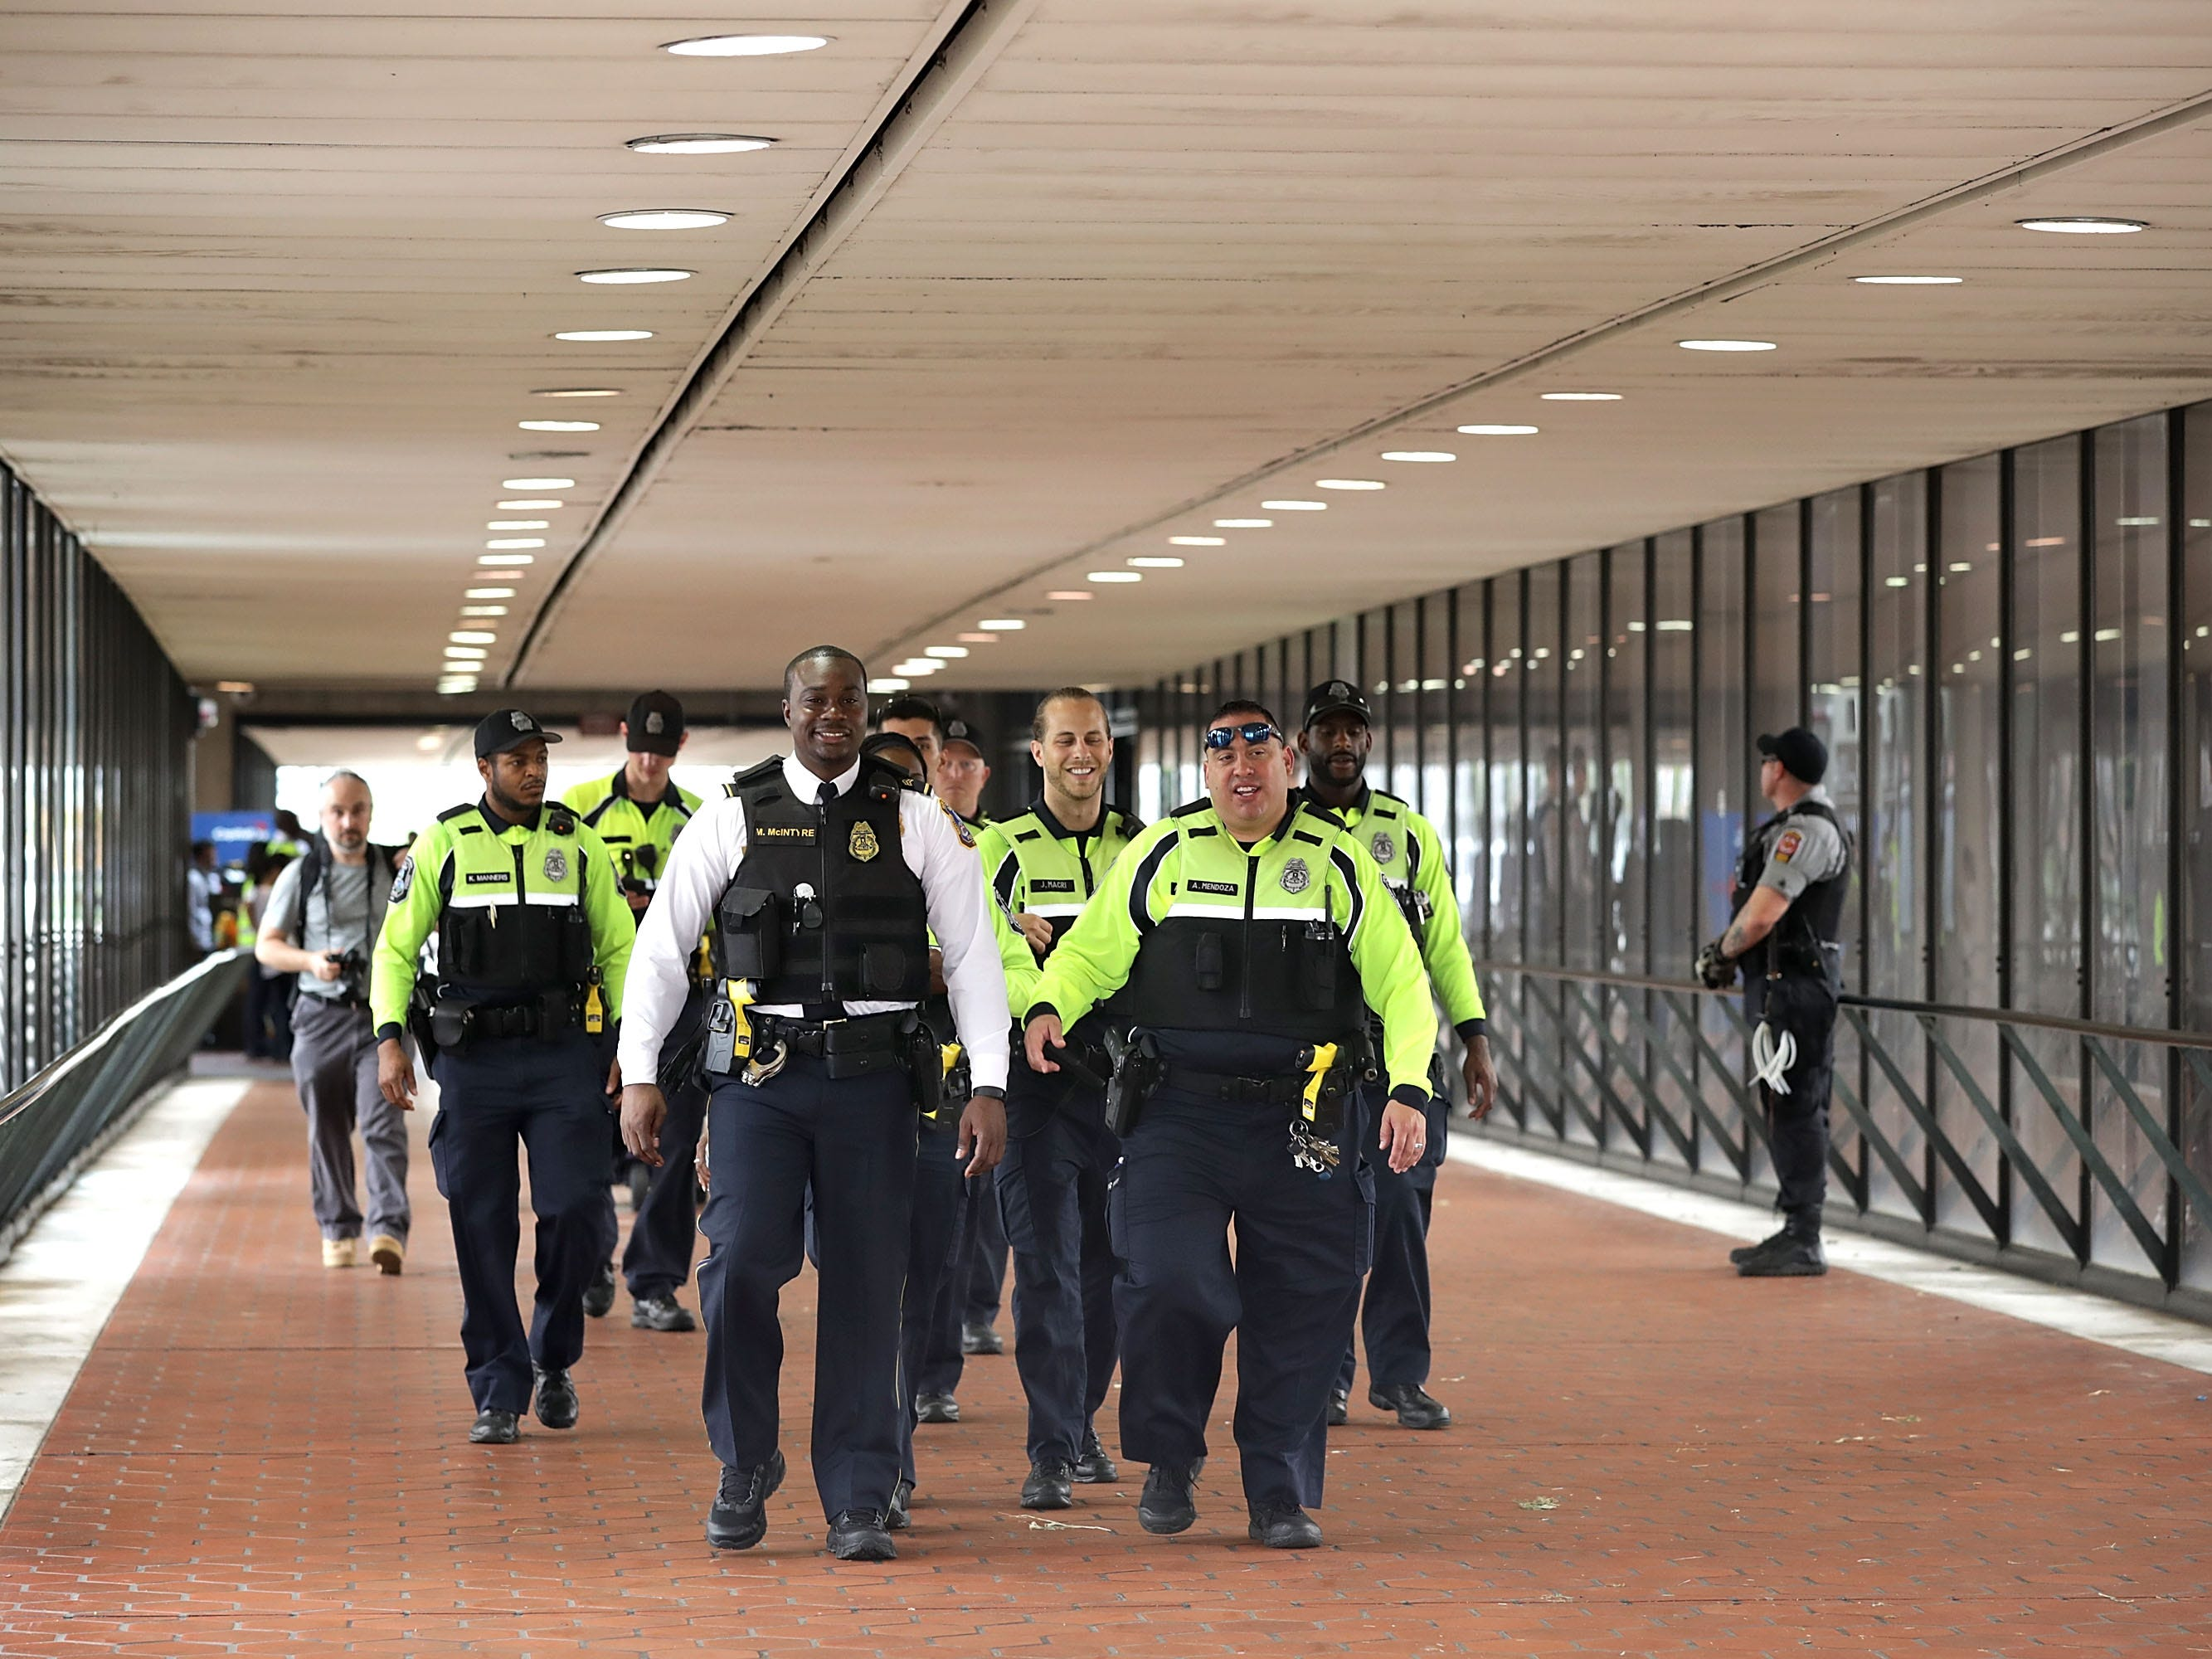 "Police stand watch at the Vienna/Fairfax Ñ GMU Metro Station in anticipation of the arrival of the white supremacist Unite the Right participants who plan to gather at the station before traveling to the White House Aug. 12, 2018 in Vienna, Va. Thousands of protesters are expected to demonstrate against the ""white civil rights"" rally in Washington, which was planned by the organizer of last yearÕs deadly rally in Charlottesville, Va."